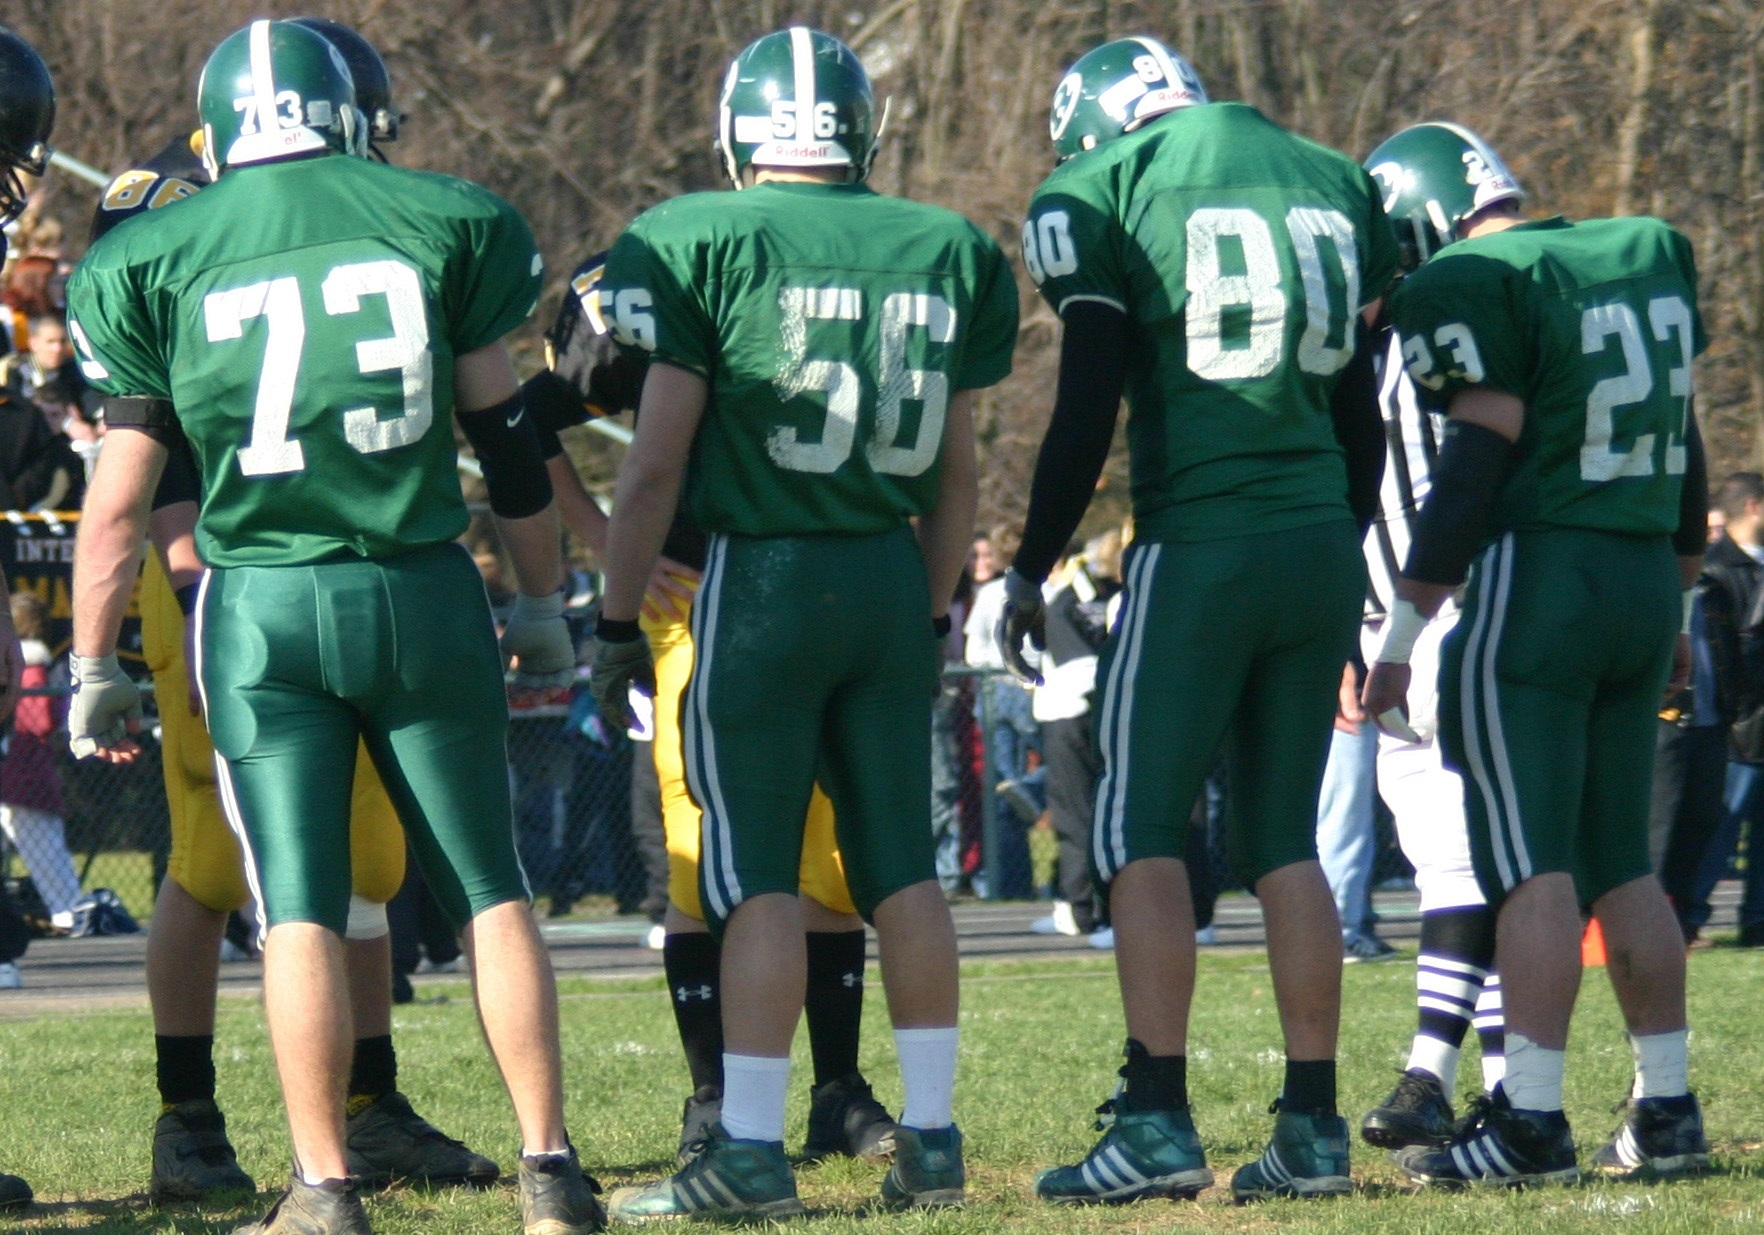 Nick Colleluri, #56, was an all-state nose guard for Ridley High School.